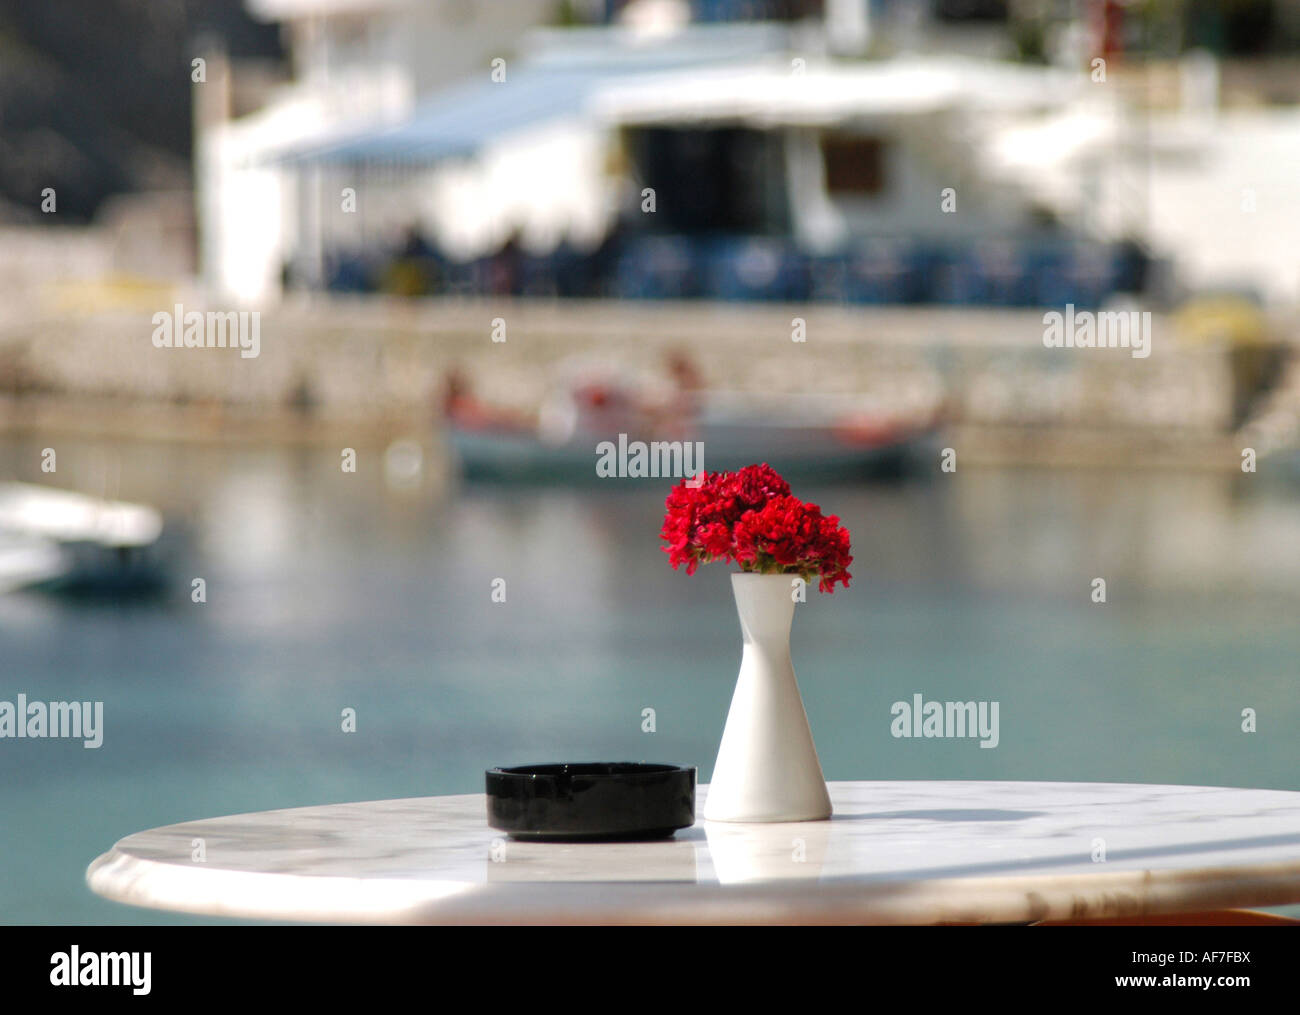 Red geranium on cafe table at Assos, Cephalonia, Greece - Stock Image